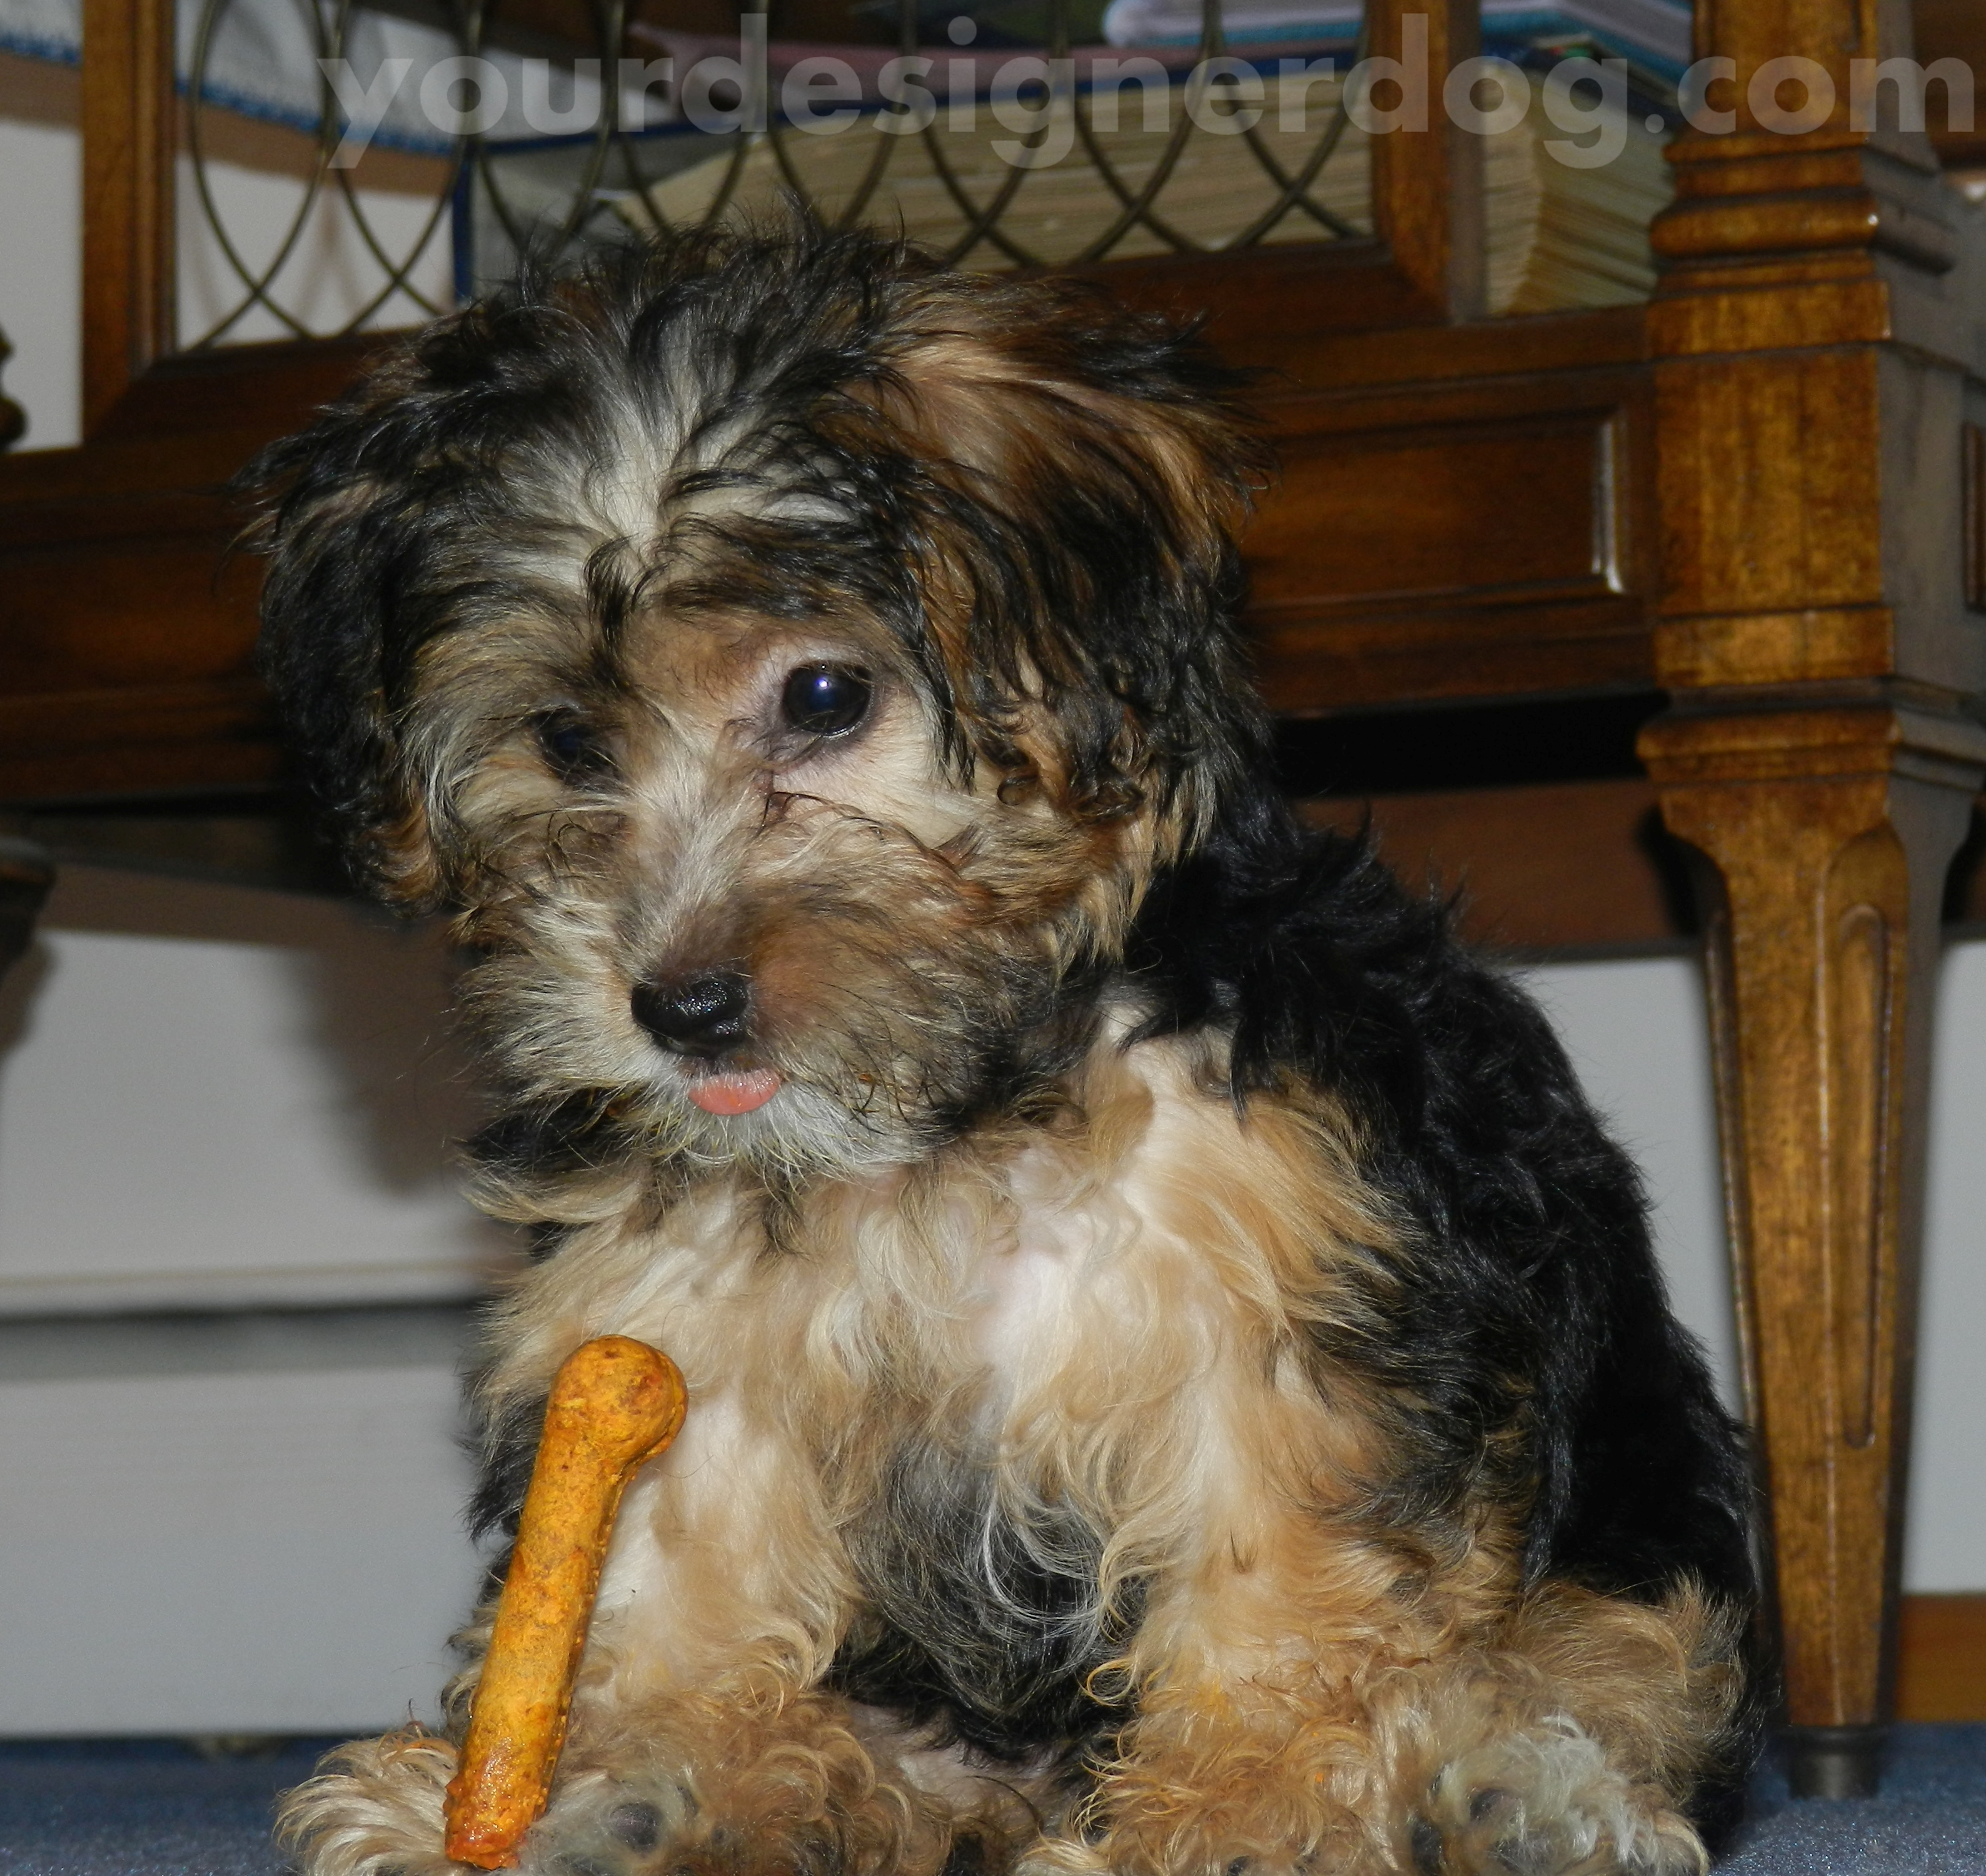 Sadie's First Dog Bone – Our First Tasty Tuesday!